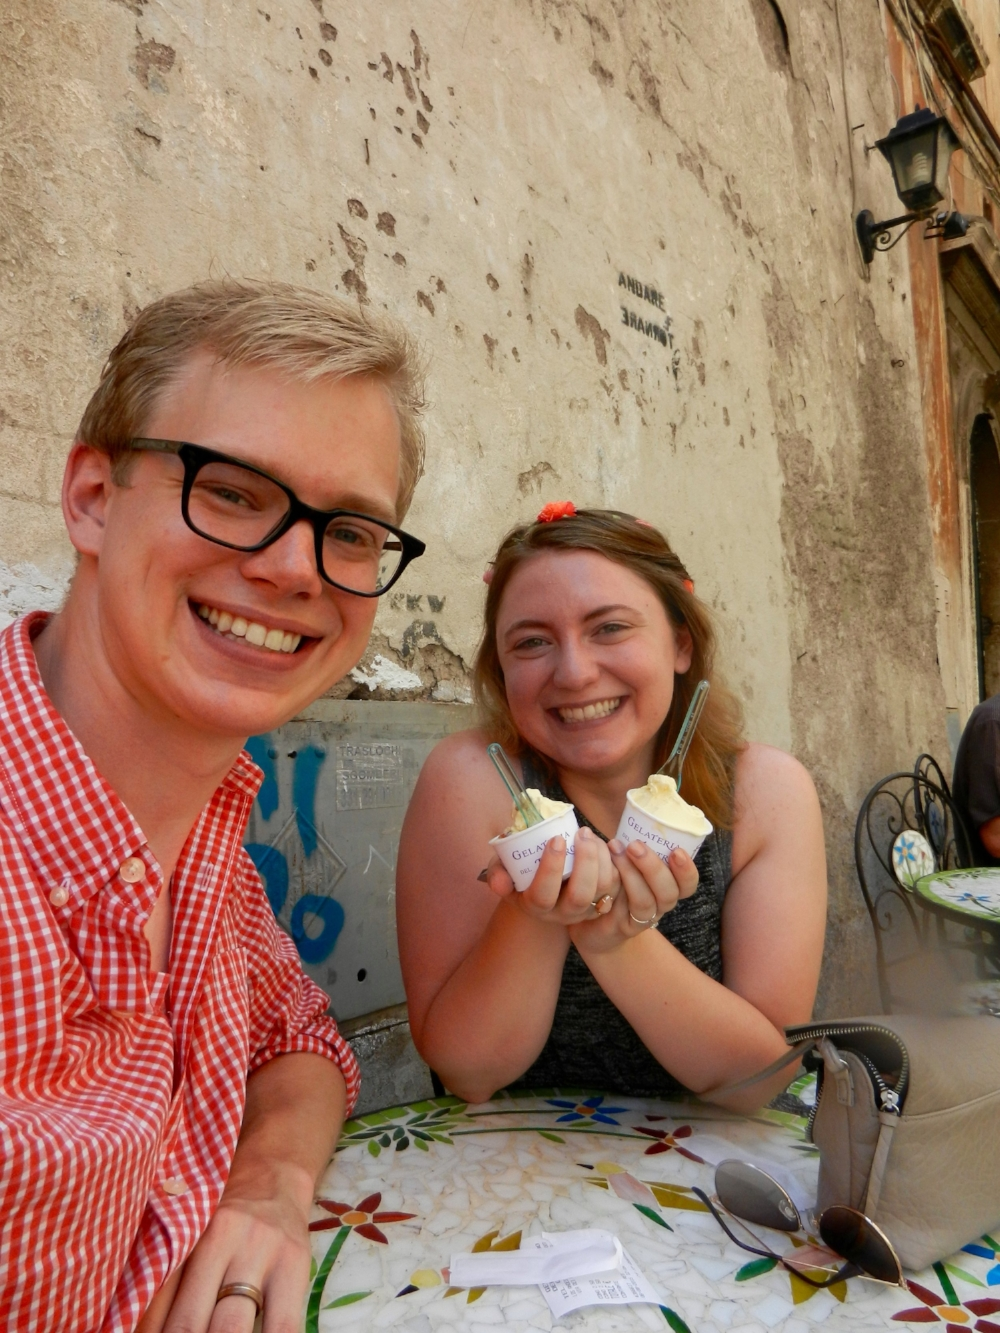 Don't even think about coming to Rome on some silly diet. Gelato is simply necessary.